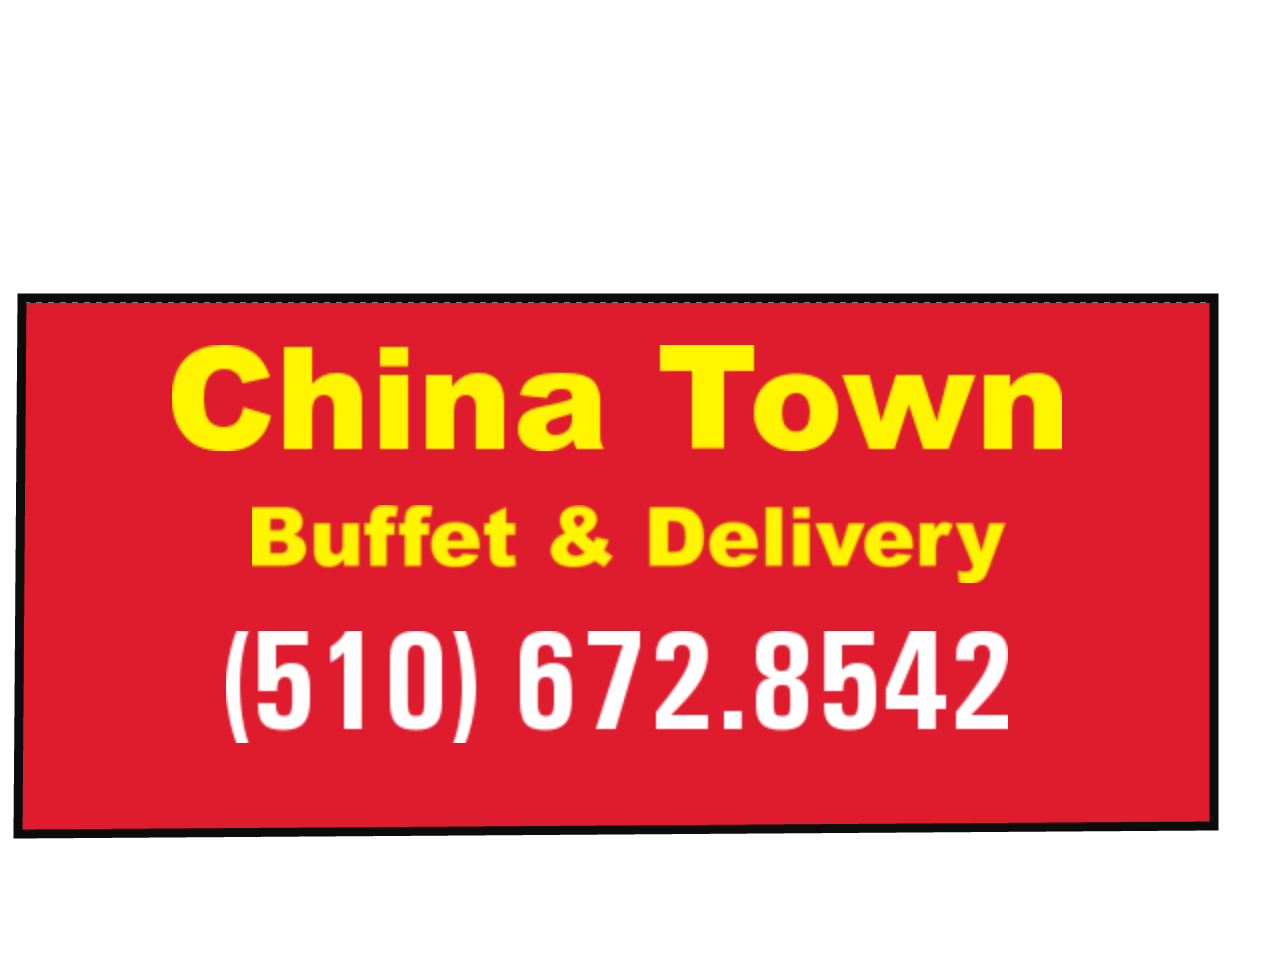 China Town Buffet and Delivery